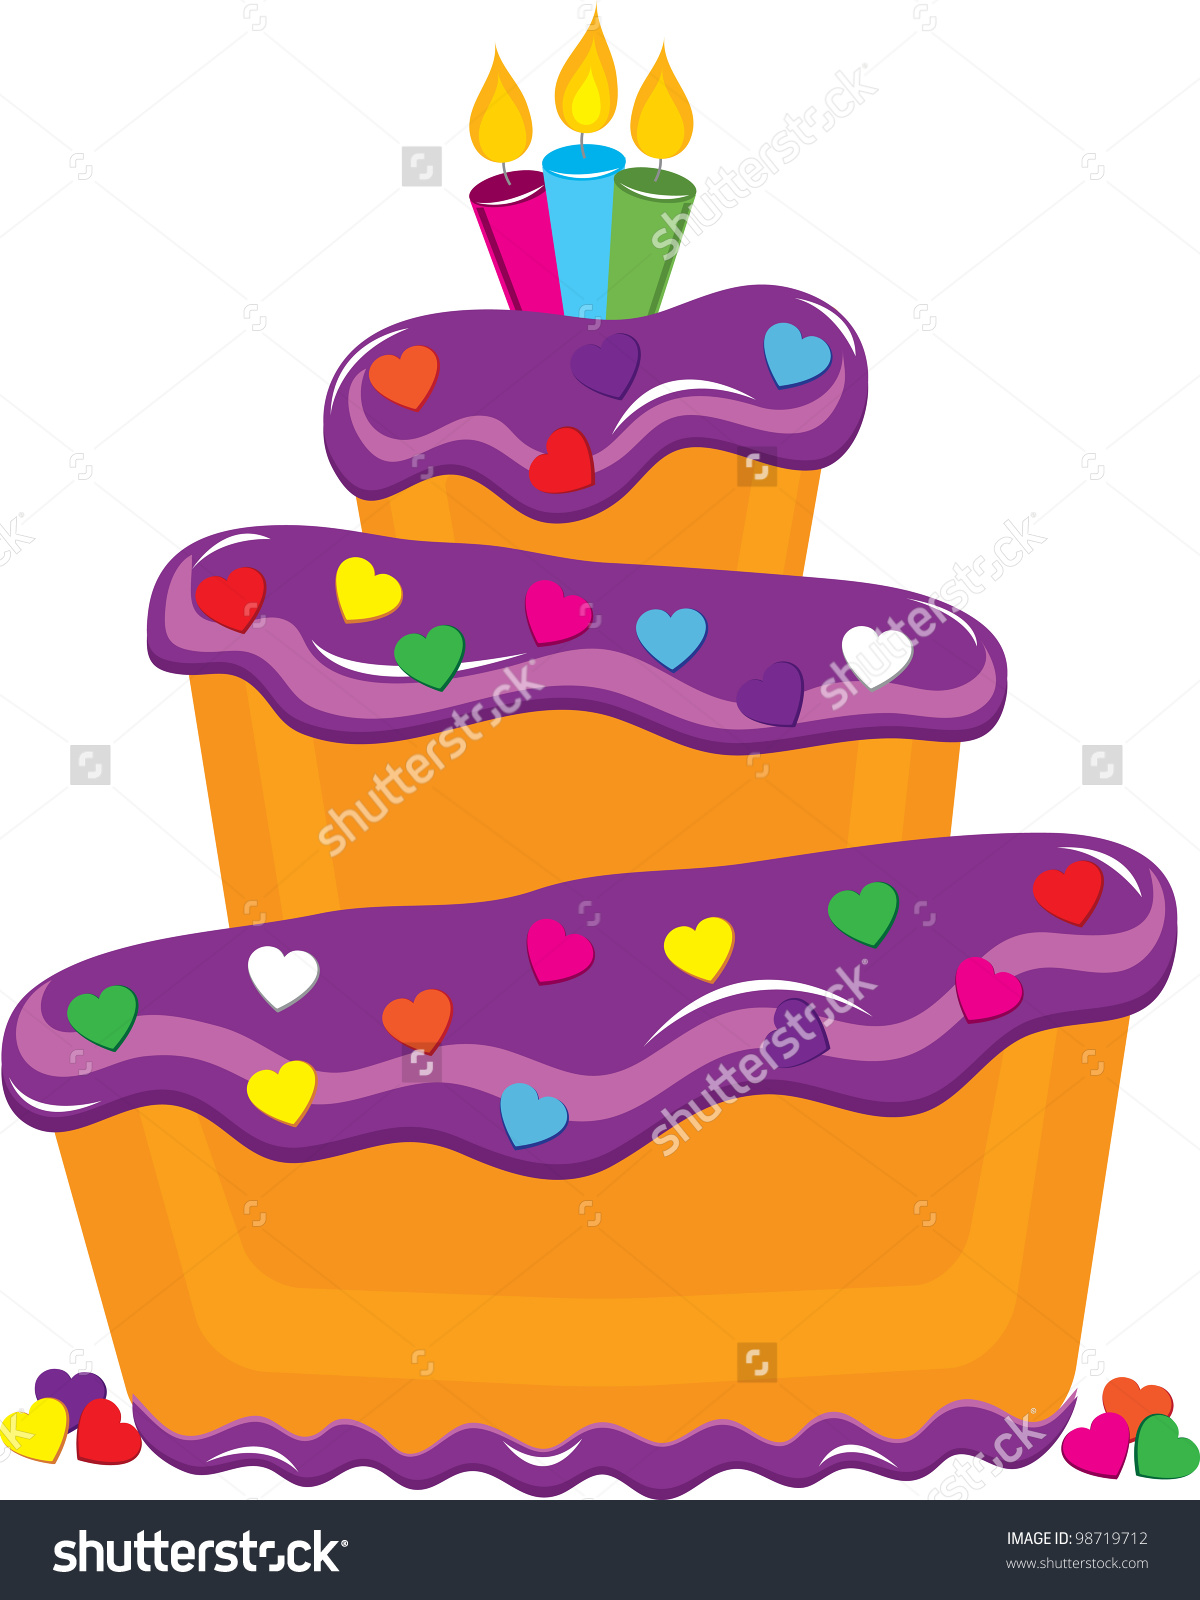 Clip Art Illustration Fancy Layer Cake Stock Illustration 98719712.